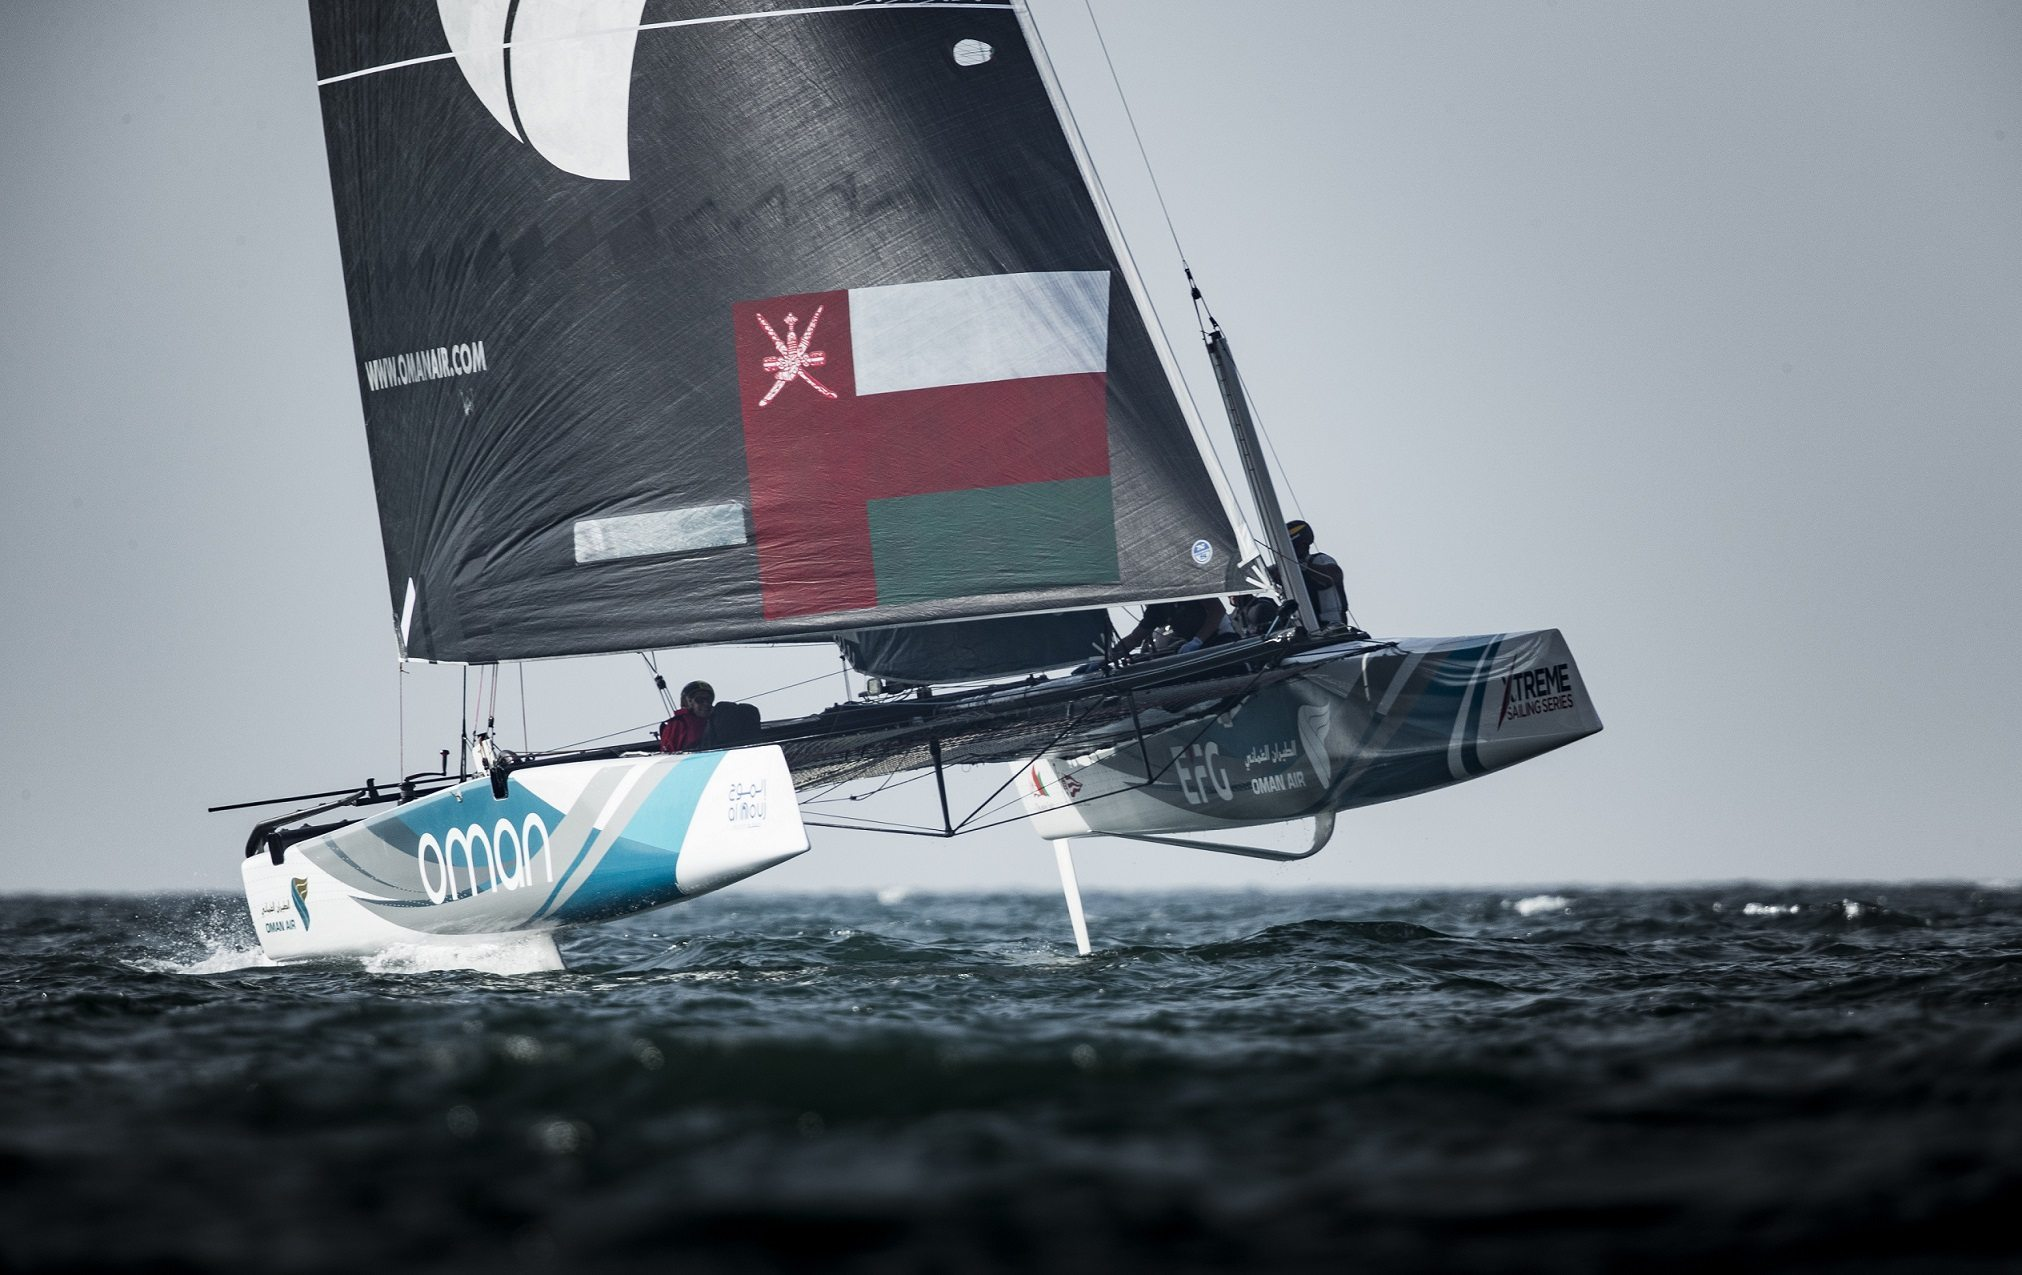 Oman Air crew confident of closing the gap as Extreme Sailing Series heads towards its conclusion